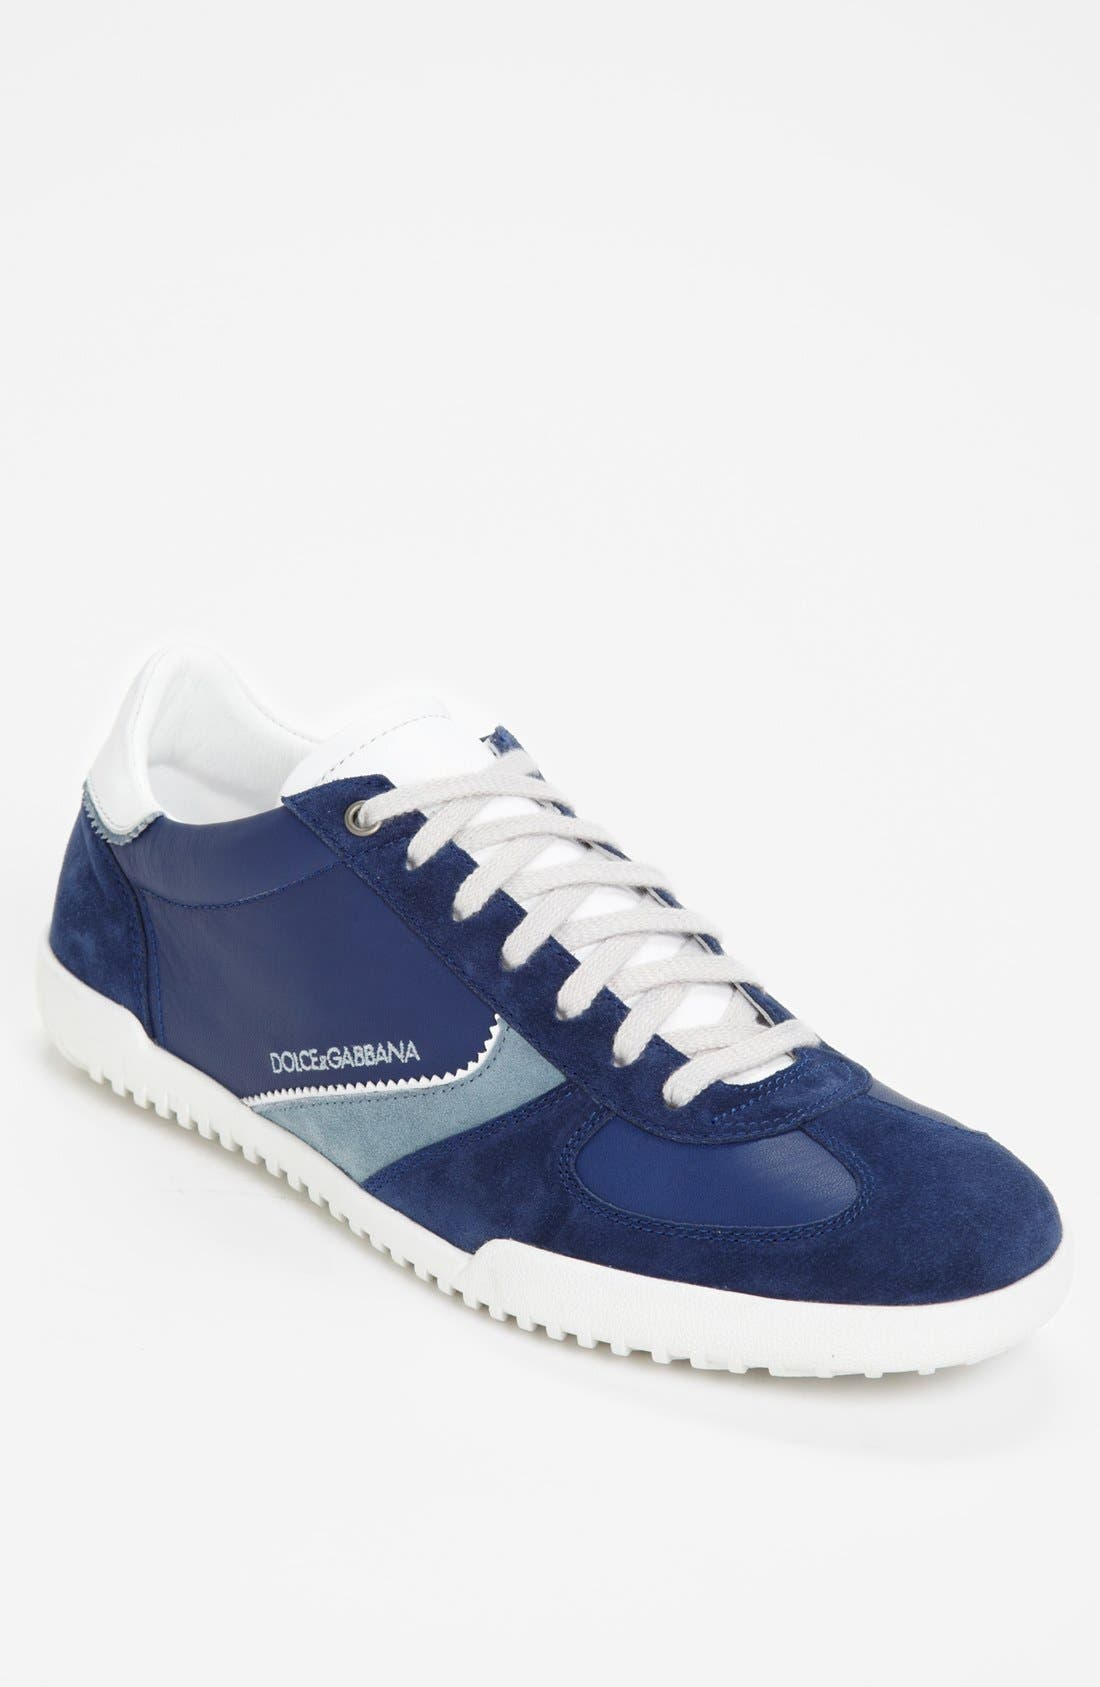 Main Image - Dolce&Gabbana 'Parcours' Sneaker